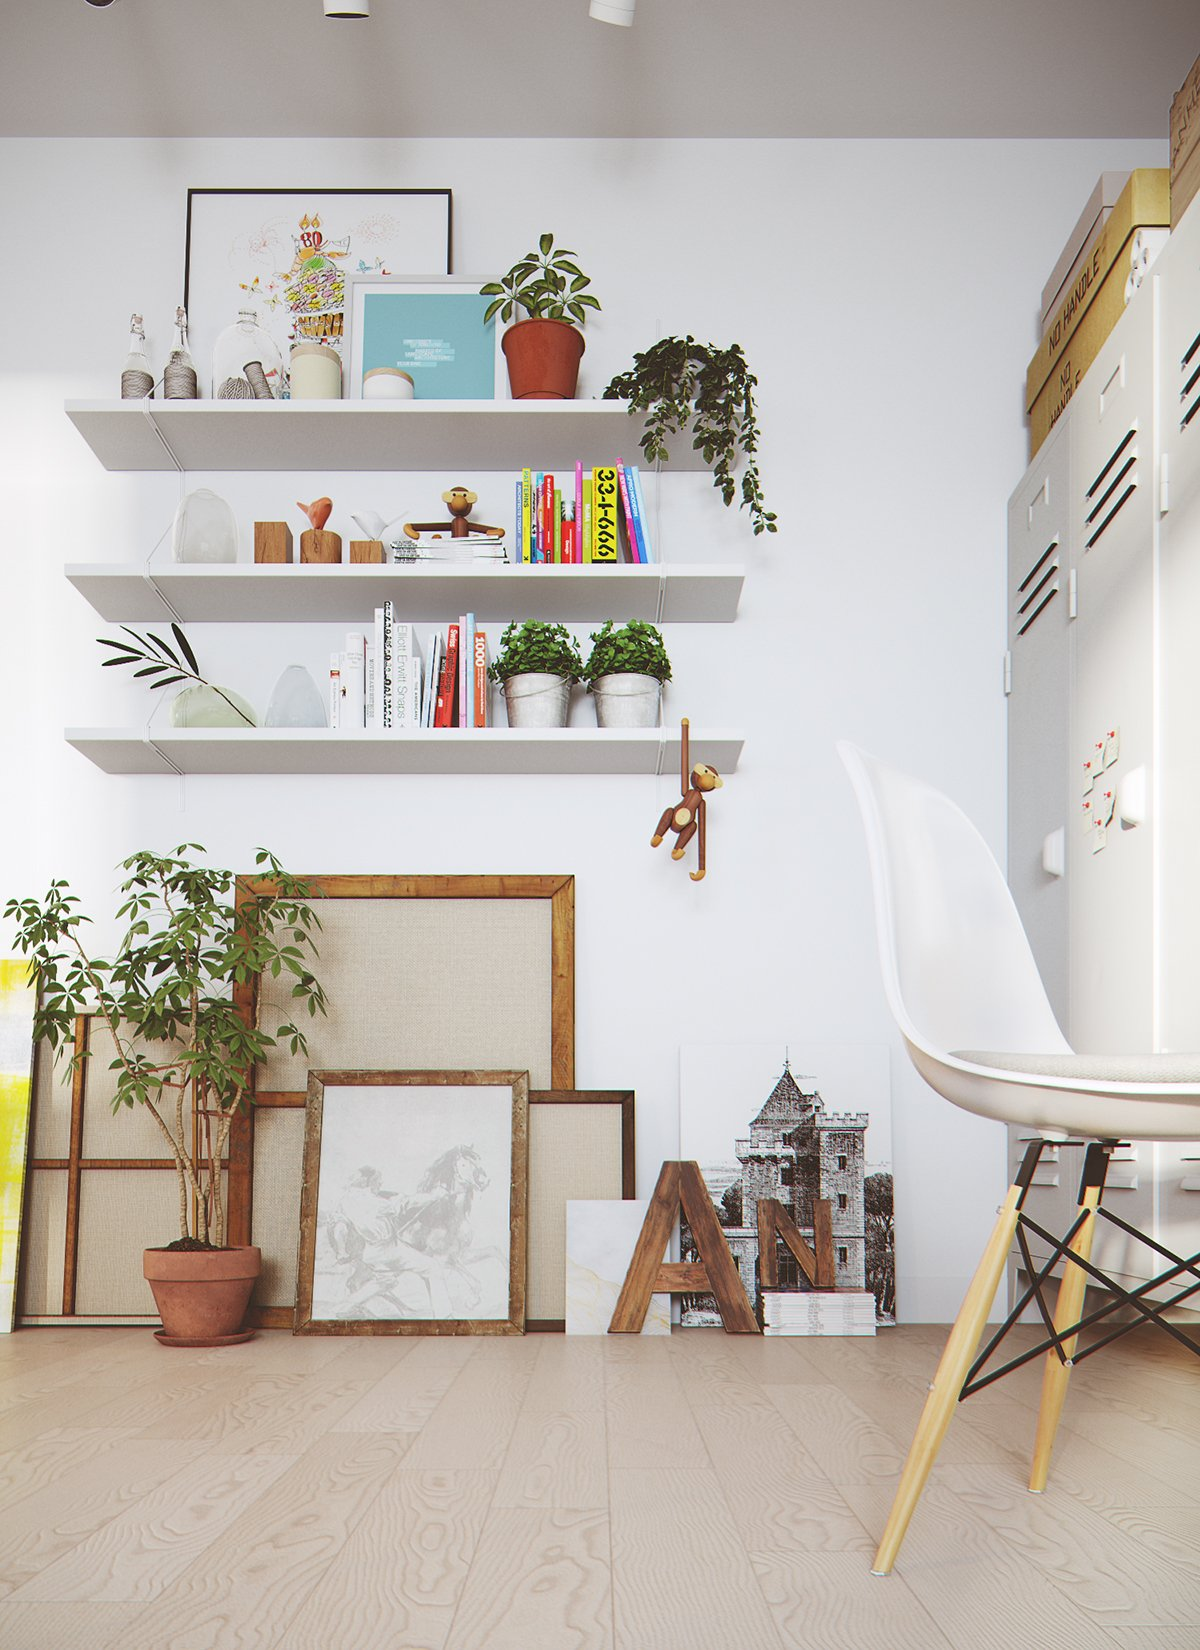 White Shelves Greenery Wood Frames - 2 stunningly beautiful homes decorated in modern scandinavian style